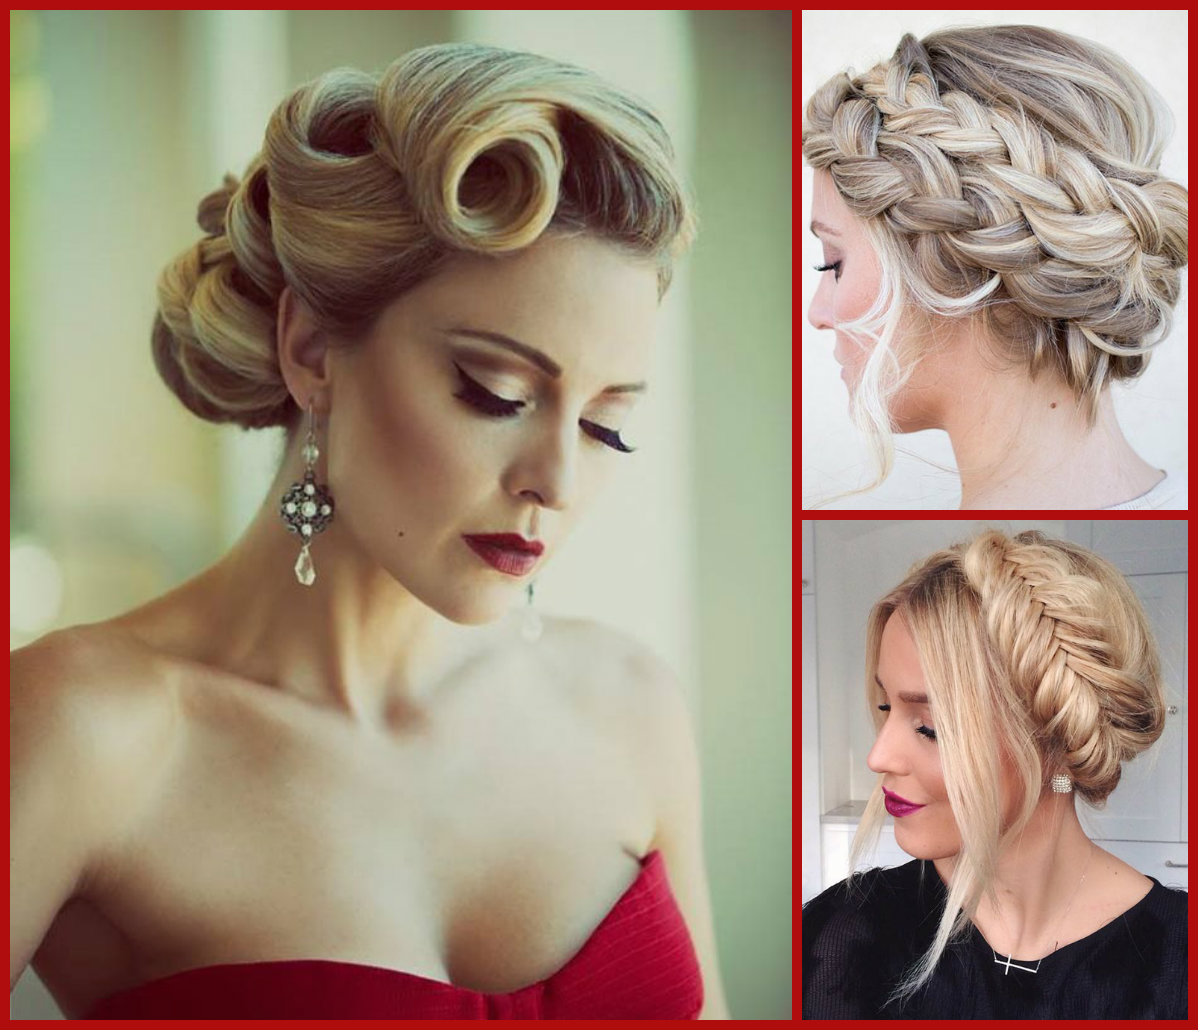 Super Top Trendy Updo Hairstyles 2015 Hairstyles 2016 Hair Colors And Short Hairstyles For Black Women Fulllsitofus